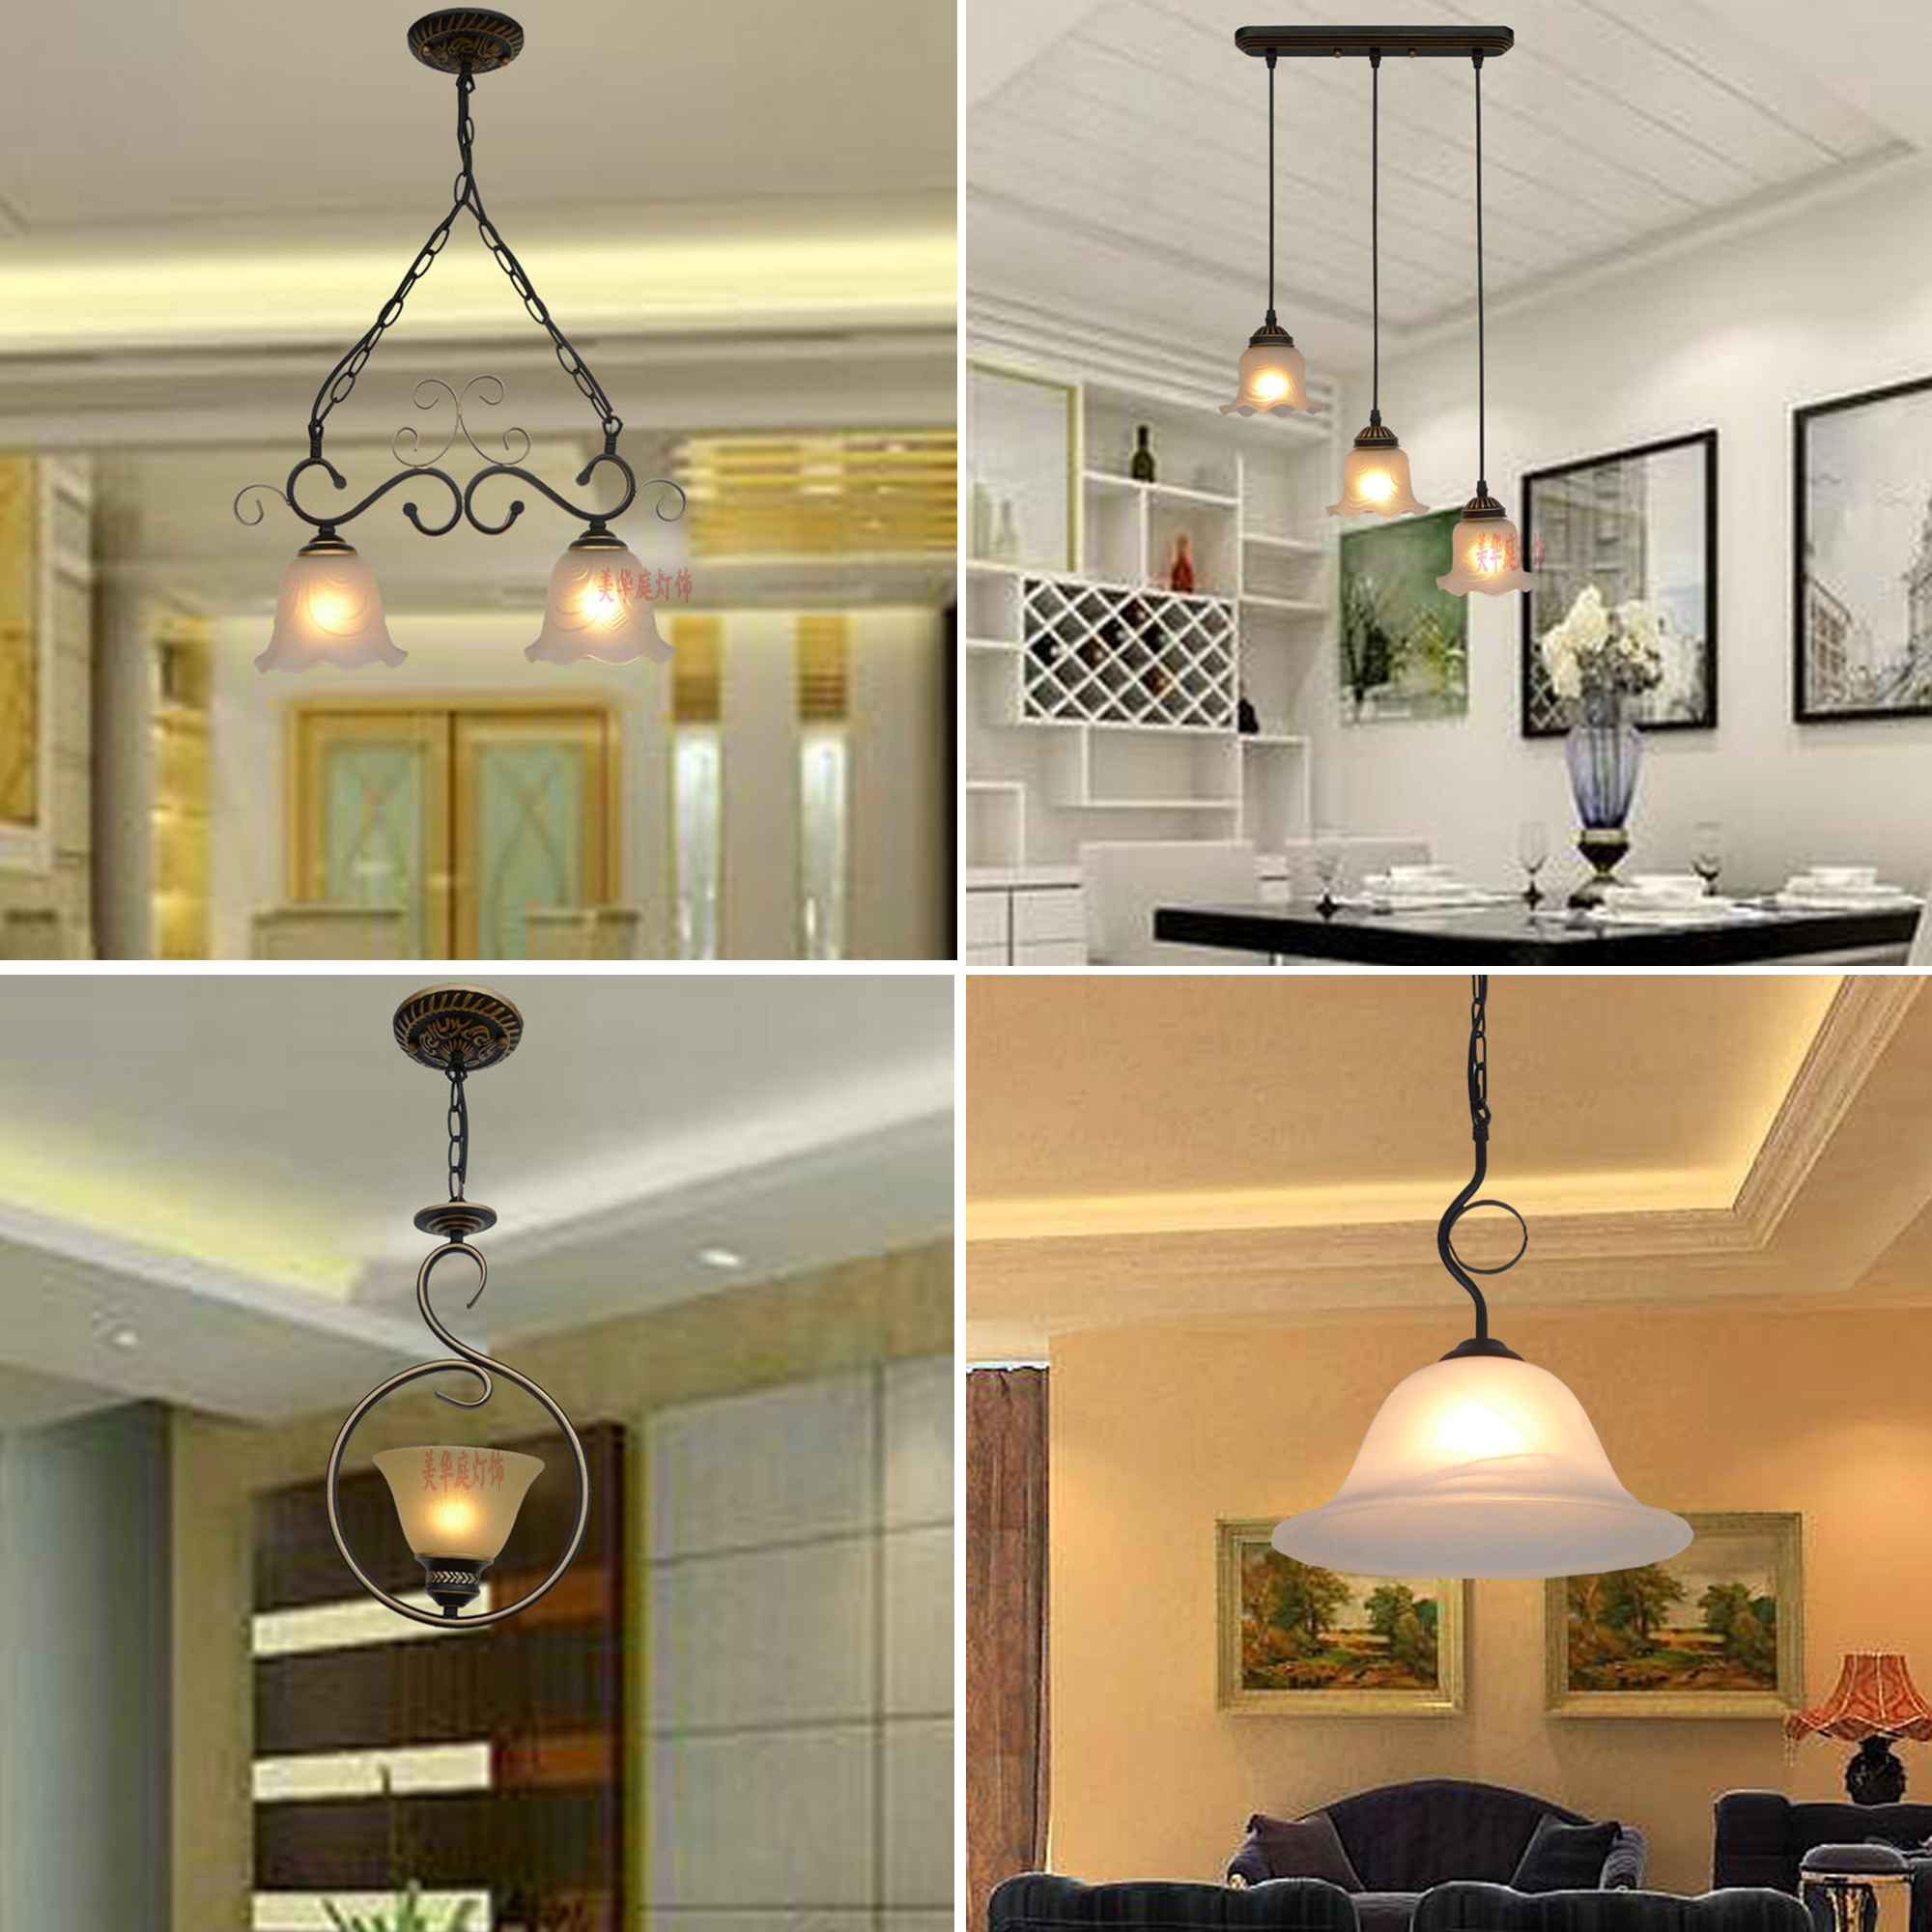 HGhomeart Home Lighting Retro Iron Led Pendant Light Lamp 110-220V E27 Dining Room Lights Luminaria Vintage Loft Lamp Fixtures black vintage iron ceiling lights fixtures for coffee restaurant dining room e27 loft kitchen lamp indoor home lighting